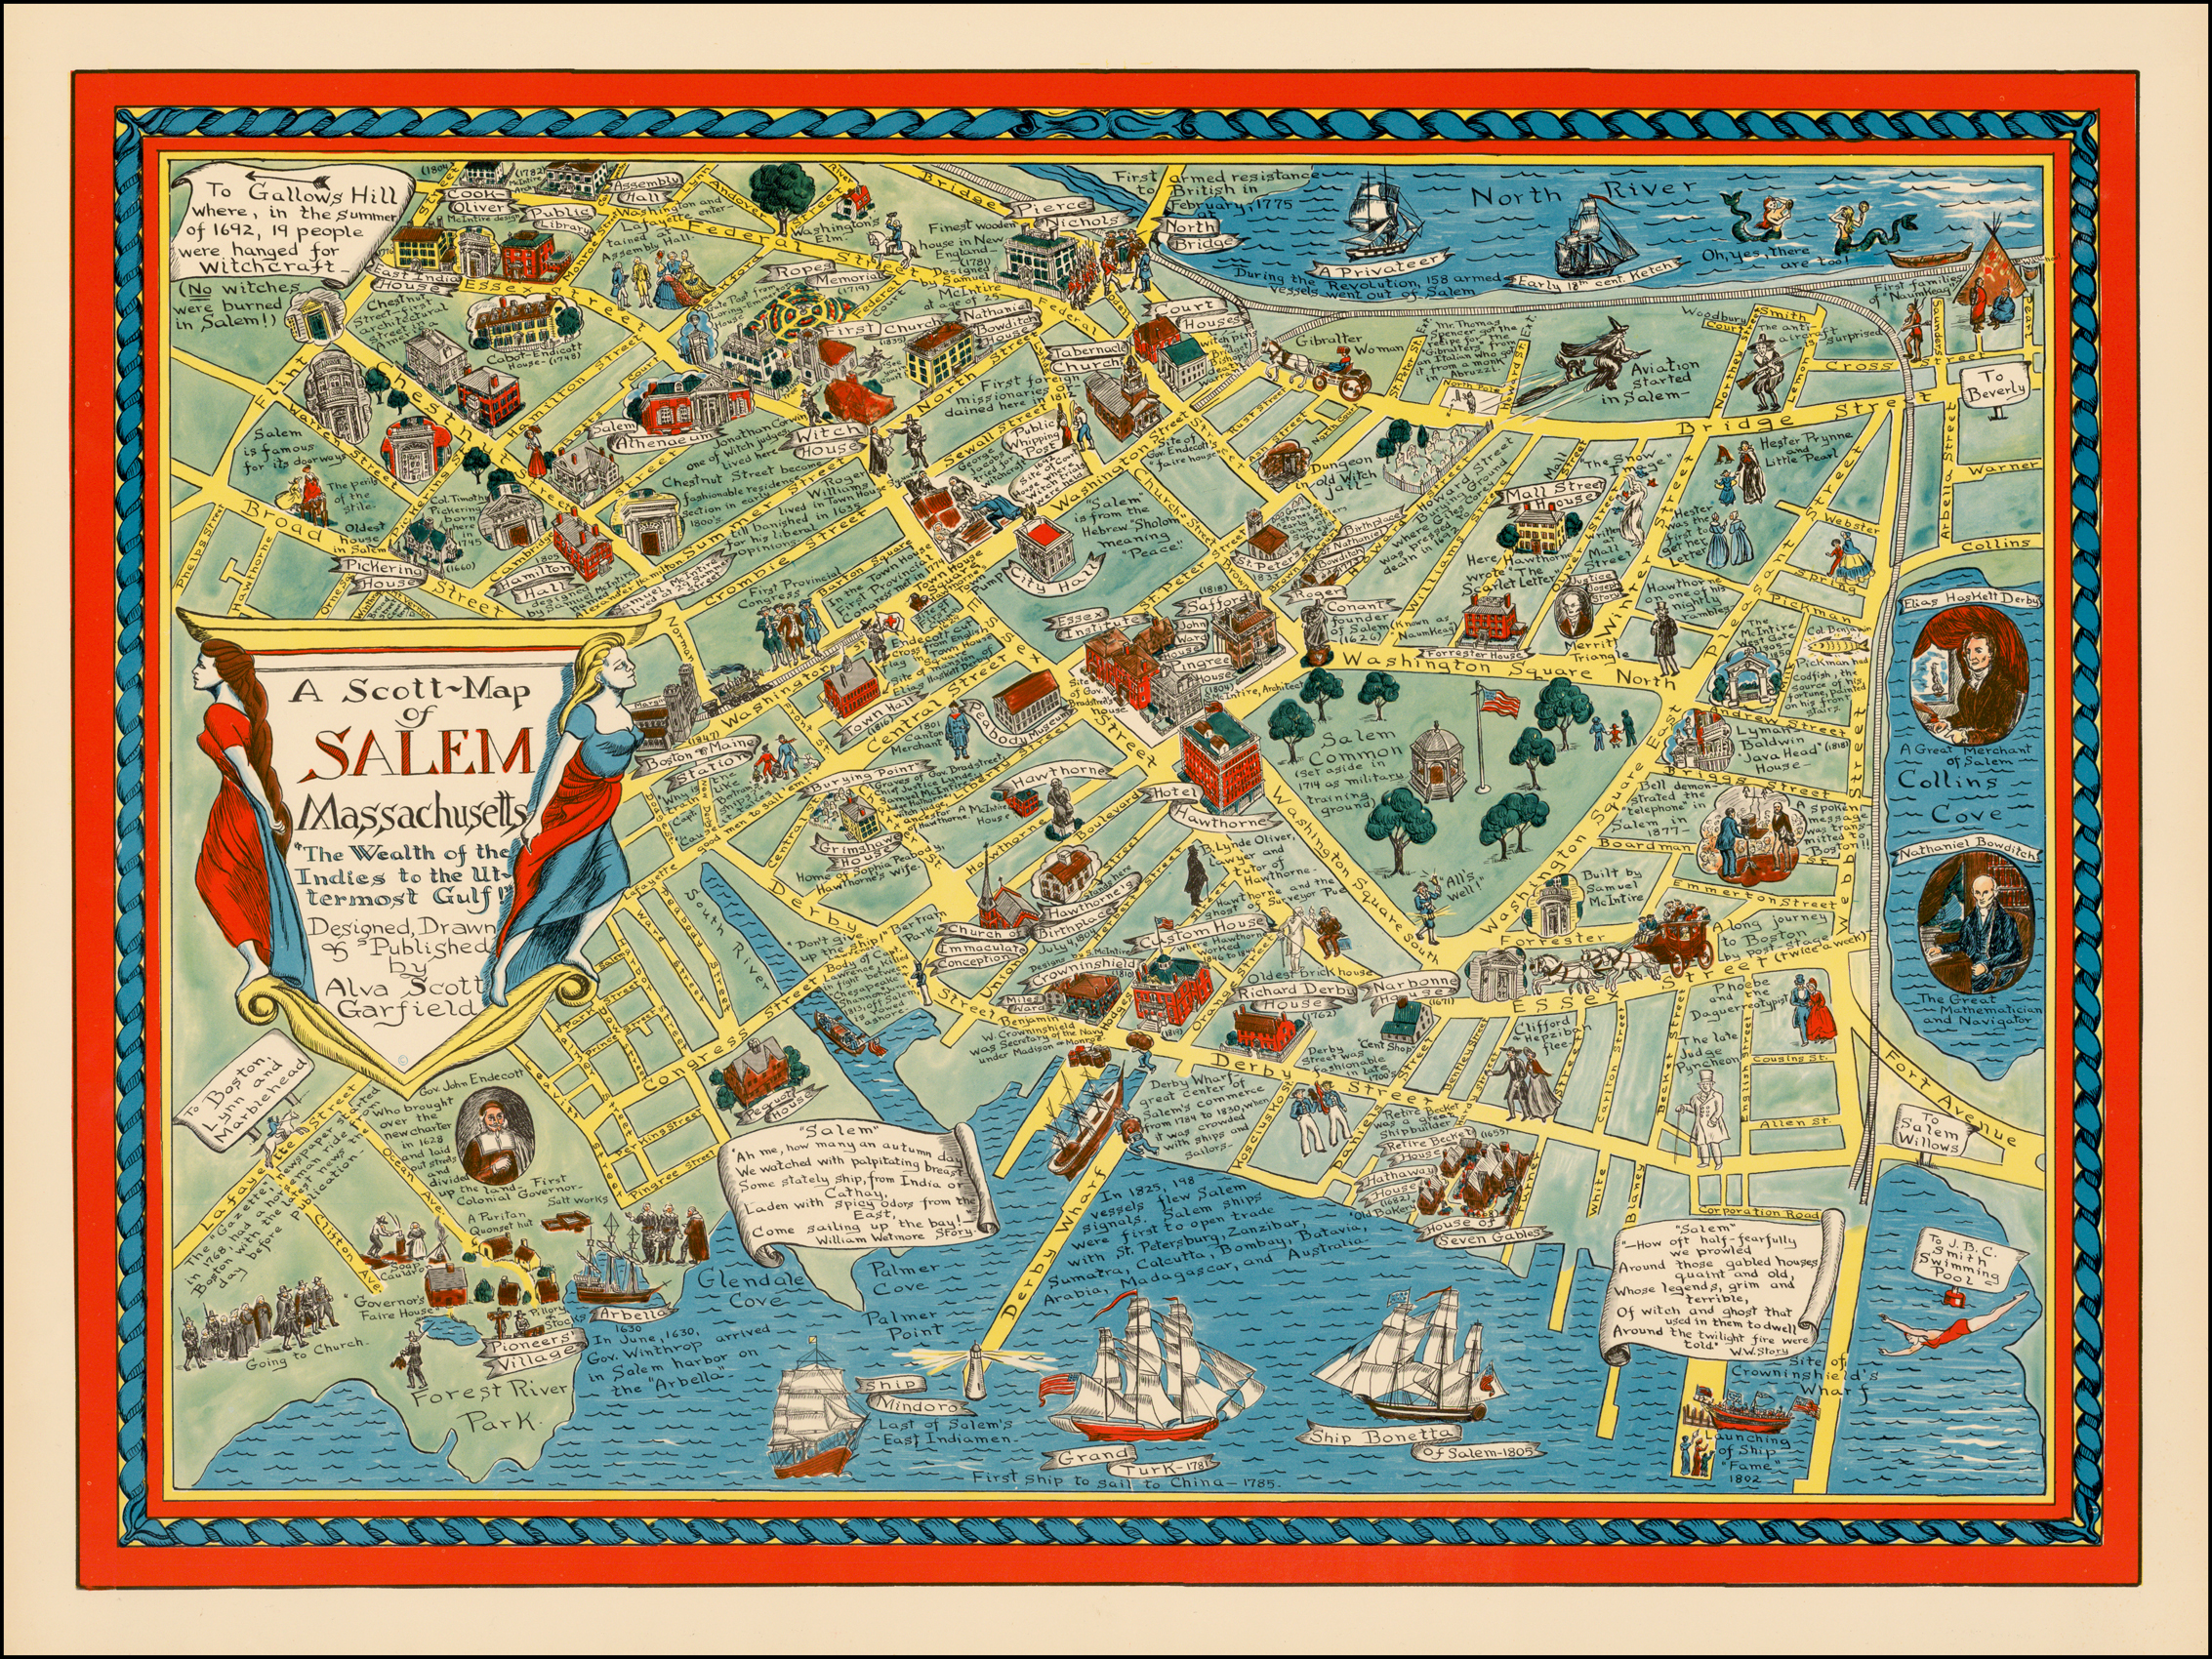 "A Scott-Map of SALEM Massachusetts ""The Wealth of the Indies ..."